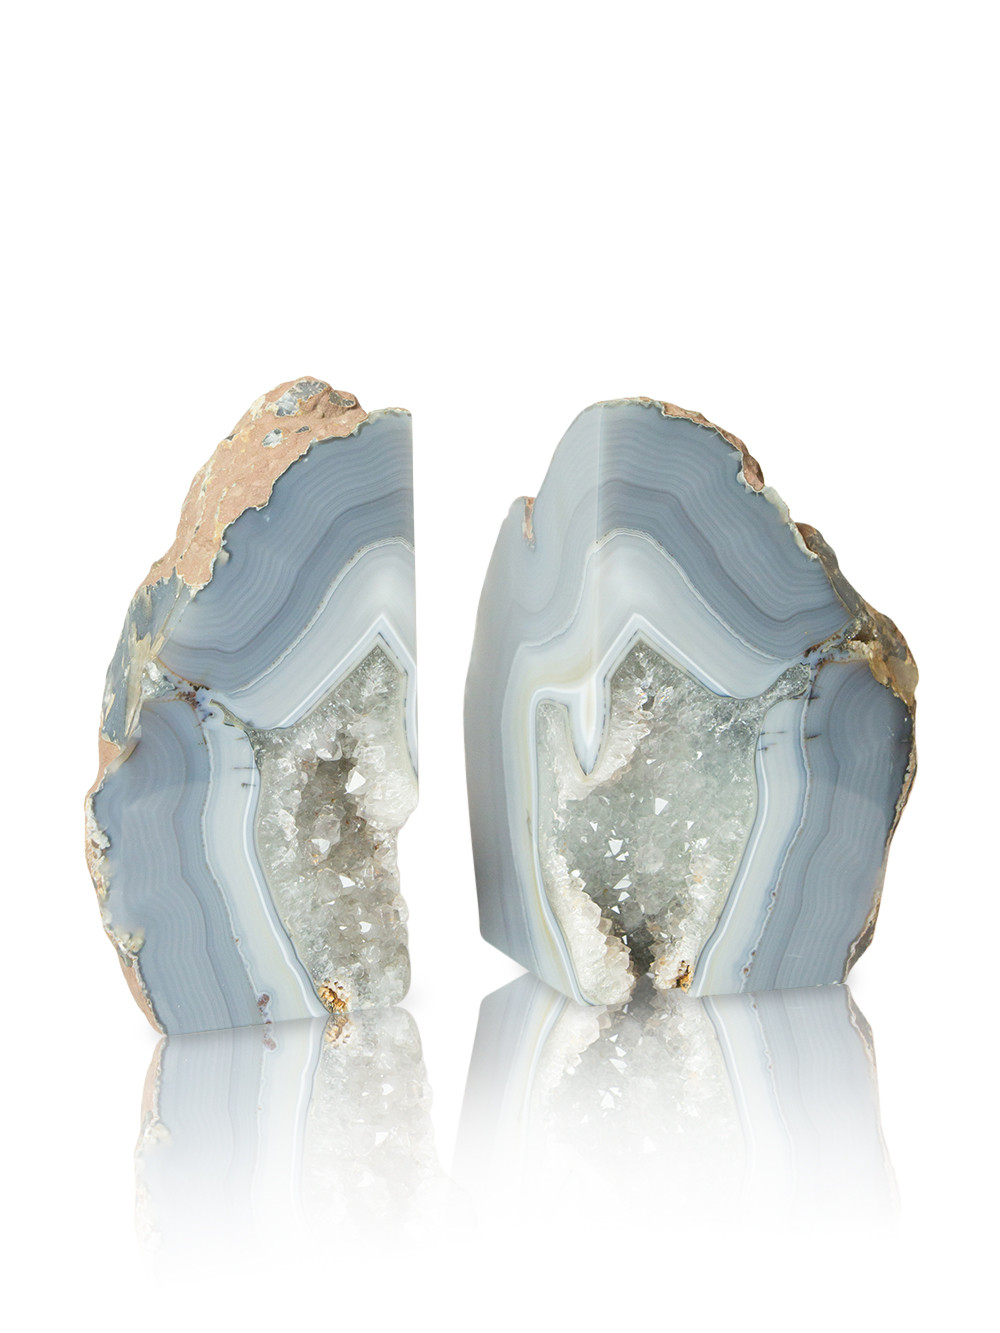 Fantastic Blue Geode Bookends | Nice Geode Bookends Design